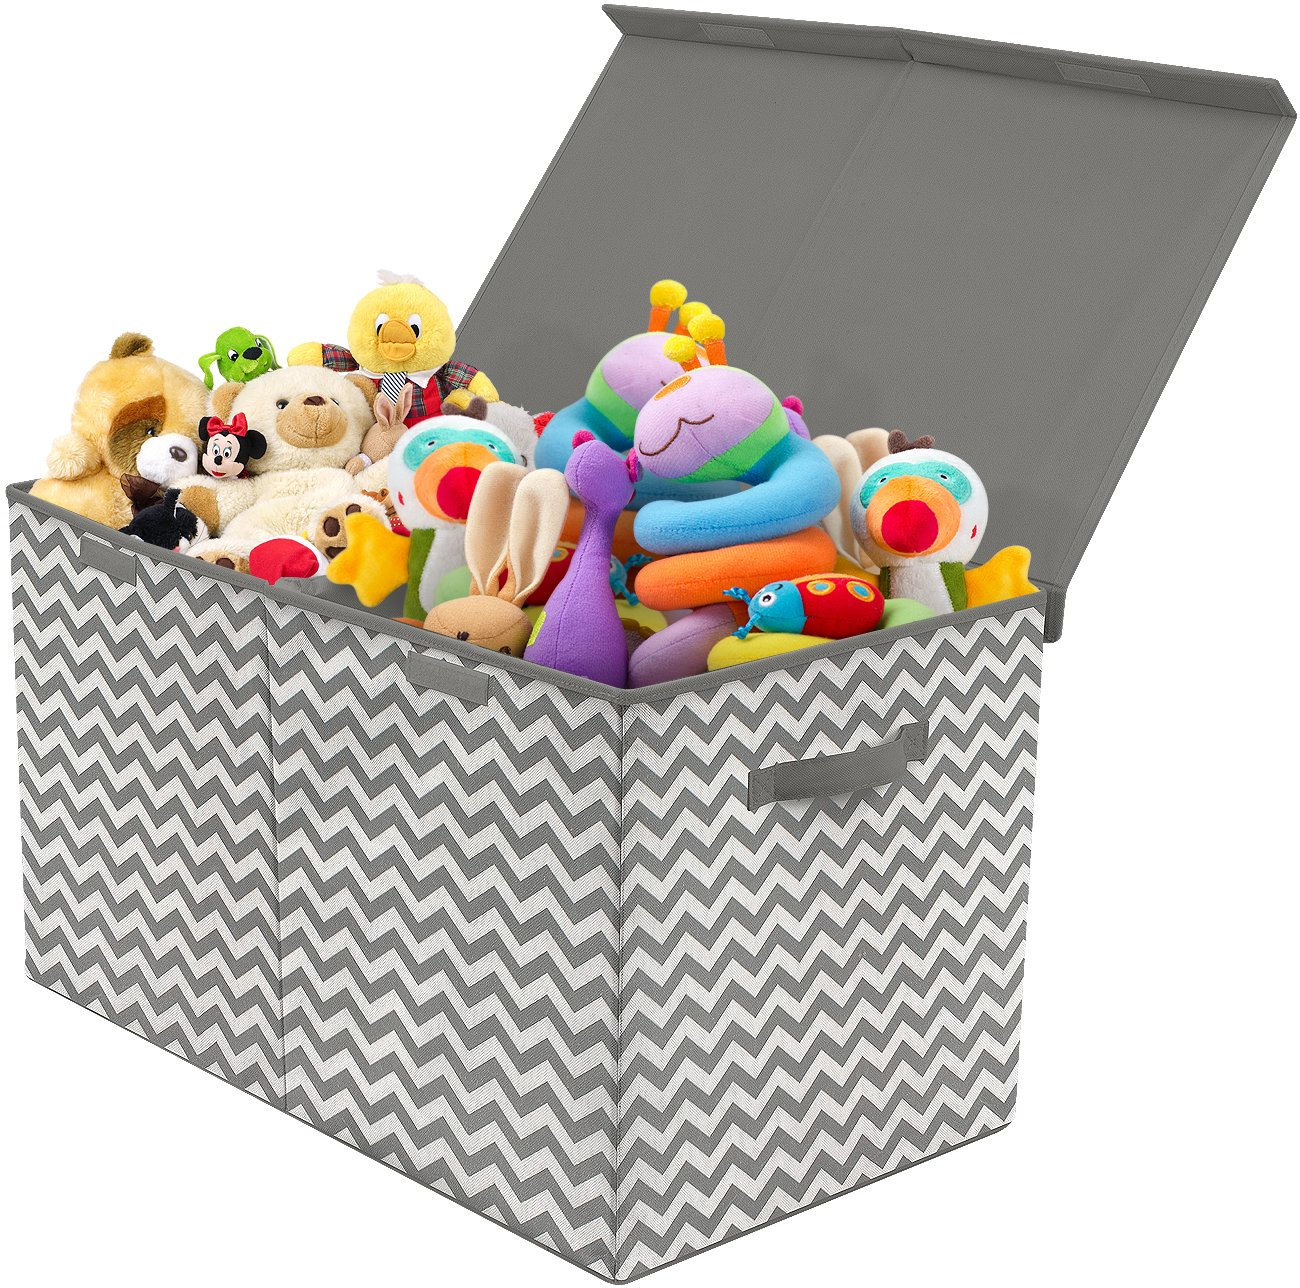 Sorbus Toy Chest with Flip-Top Lid, Kids Collapsible Storage for Nursery, Playroom, Closet, Home Organization, Large (Pattern - Chevron Gray) by Sorbus